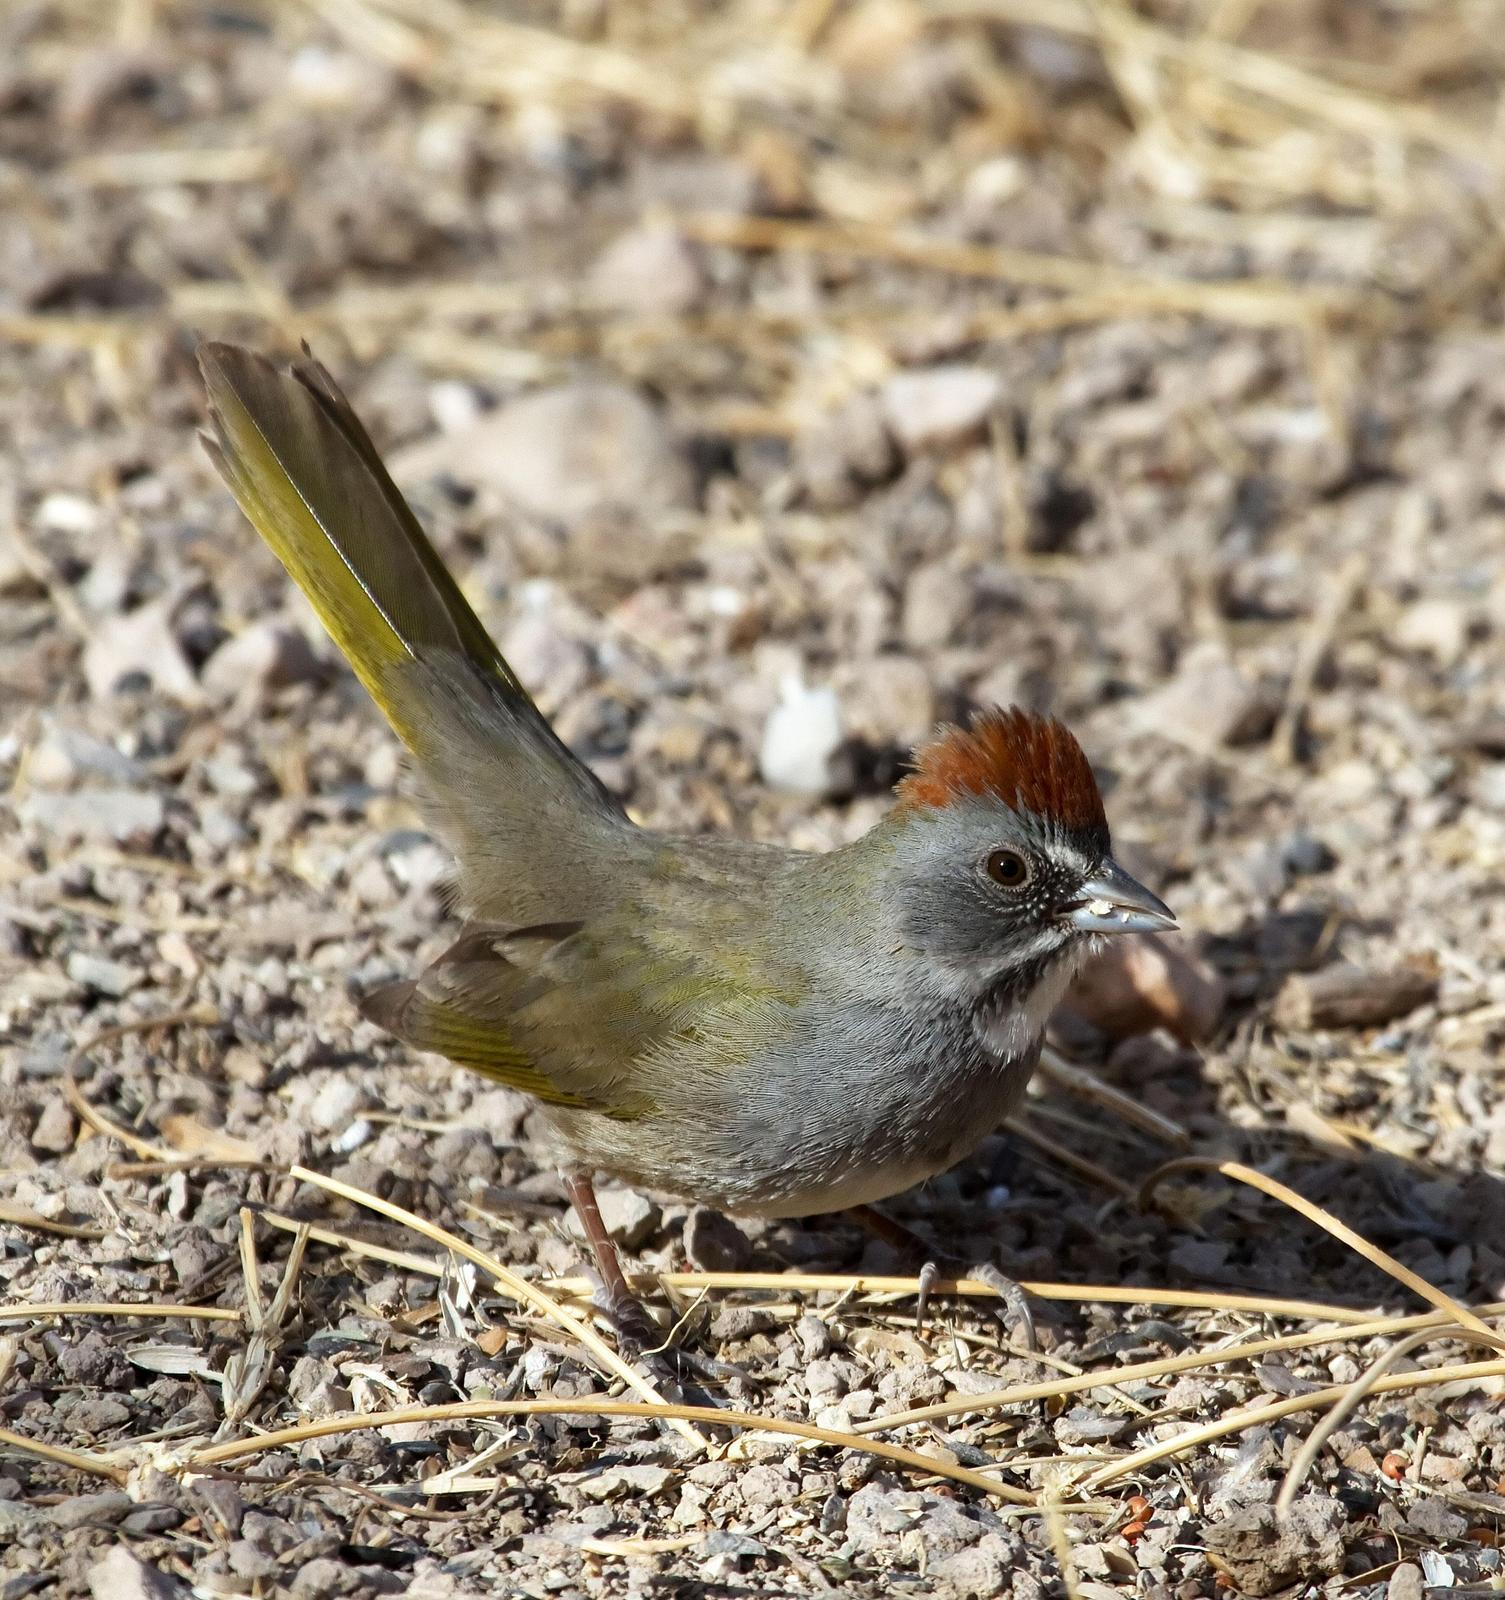 Green-tailed Towhee Photo by Scott Berglund